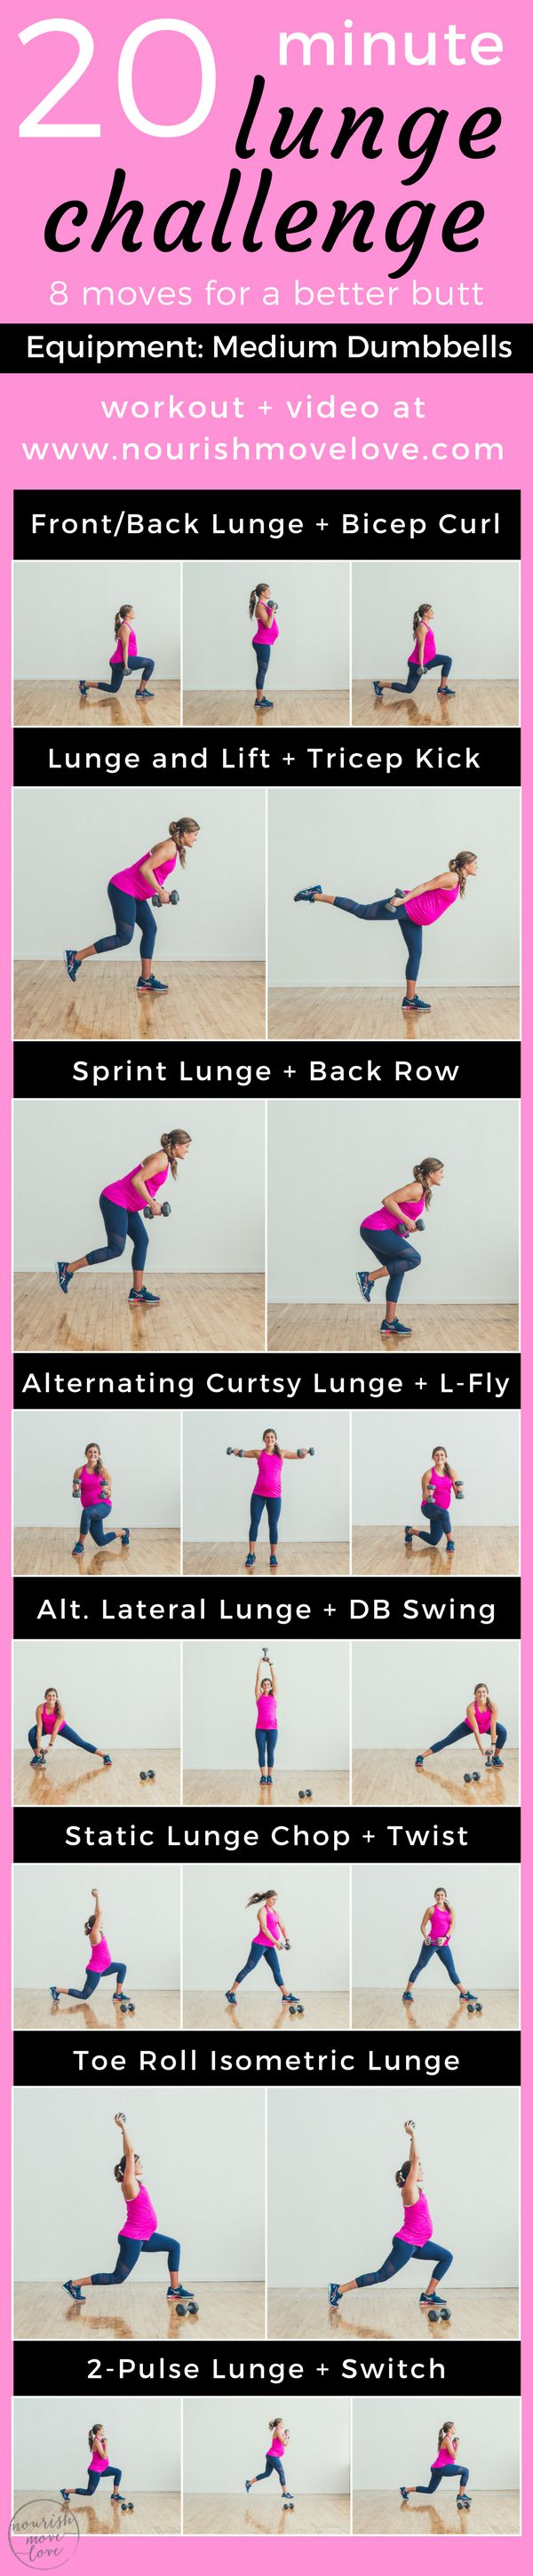 8 lunge variations, all wrapped up in to a 20 minute total body workout! Challenge those legs and that butt and work that booty with these lunges. Use a medium set of dumbbells for a total body burn. Perfect workout for building that booty. | www.nourishmovelove.com | 8 Lunge Variations for a Better Butt | 20 Minute Lunge Challenge